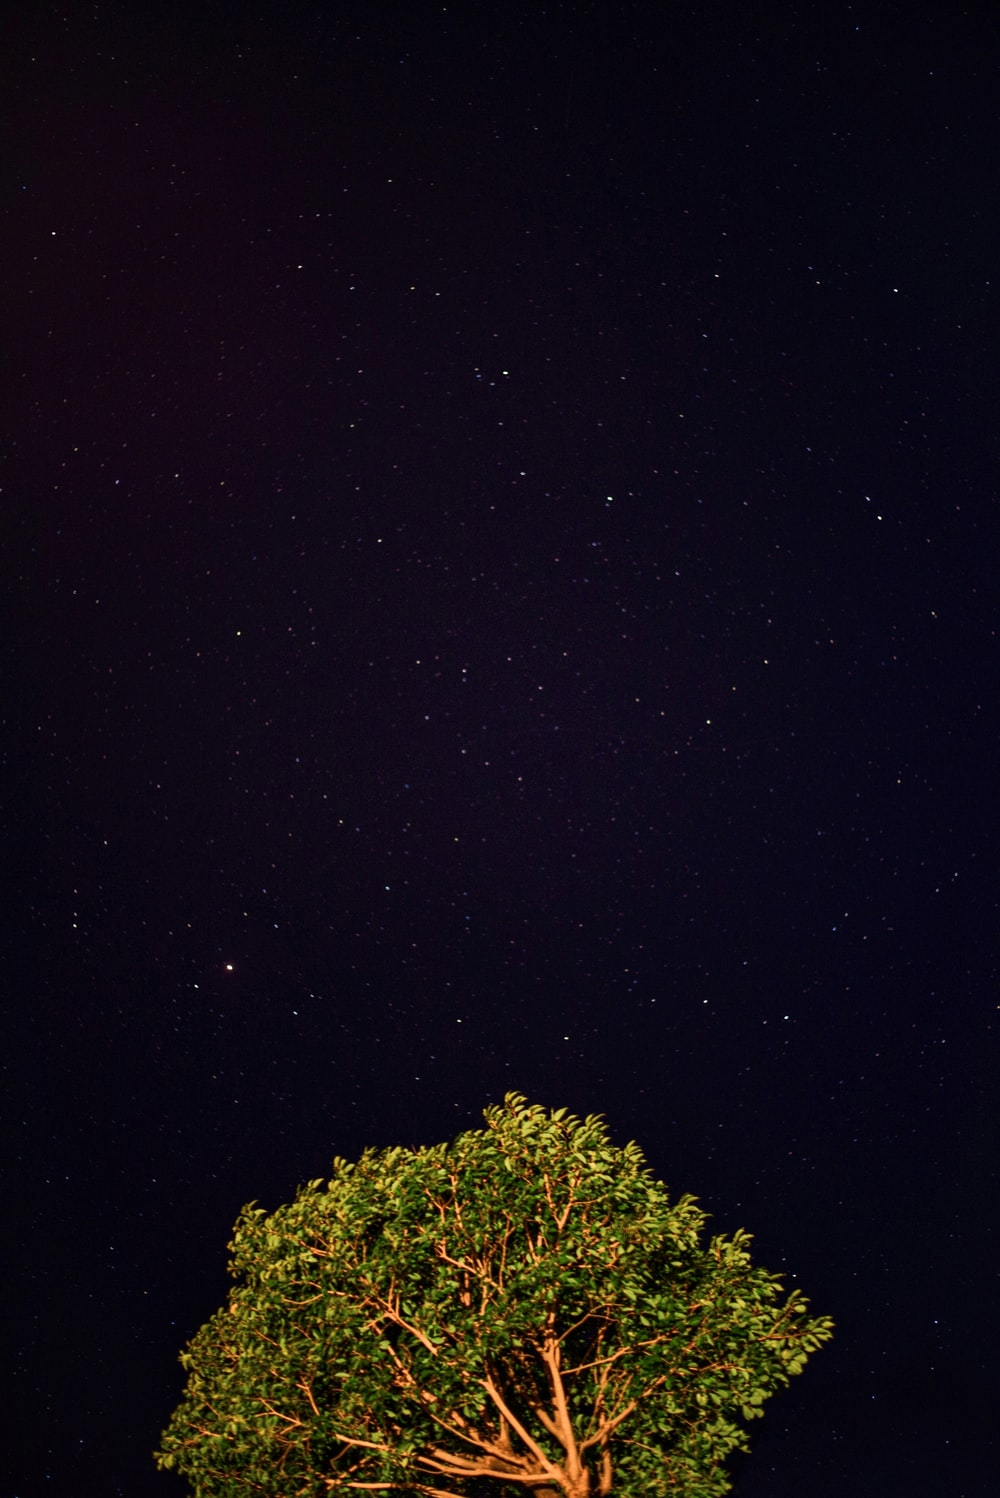 green tree under black sky during night time